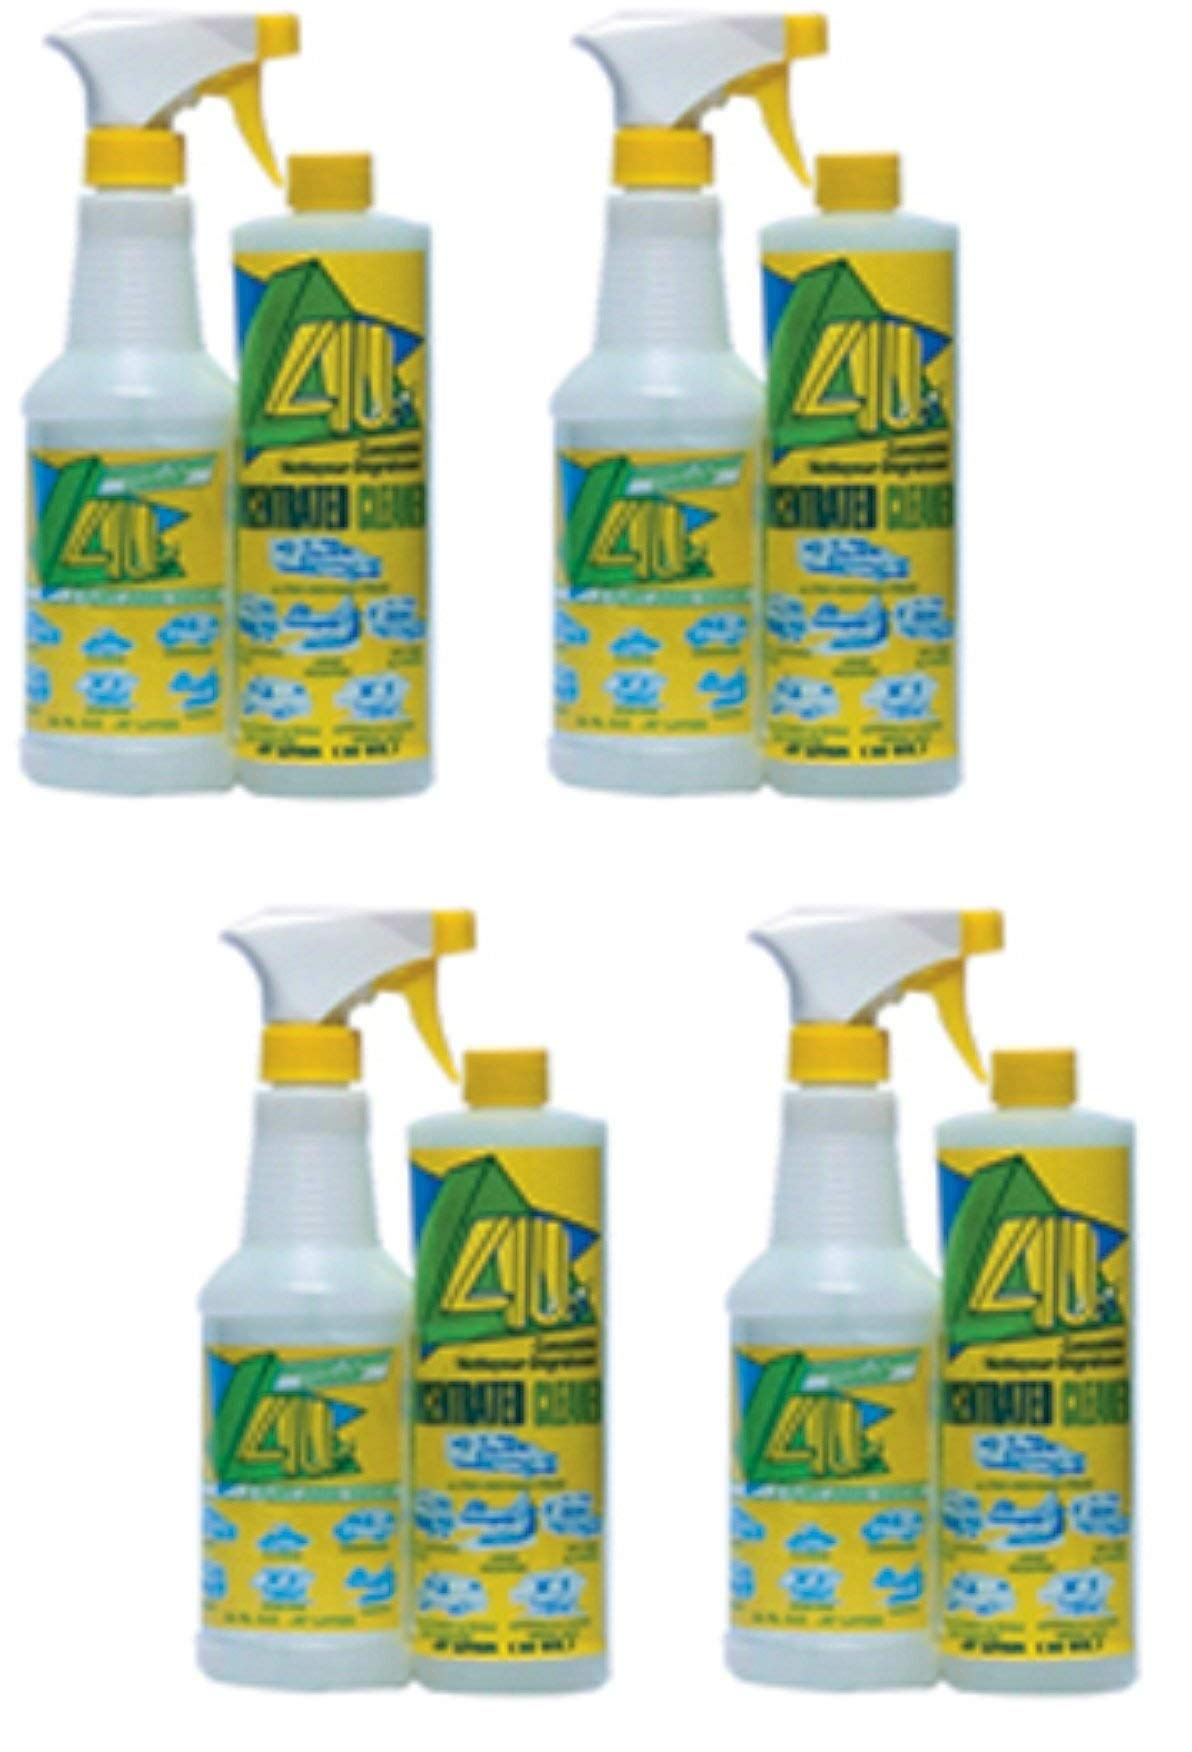 Metalube Corp CDC/TS16 Cleaner/Degreaser - 16 fl. oz. (4)